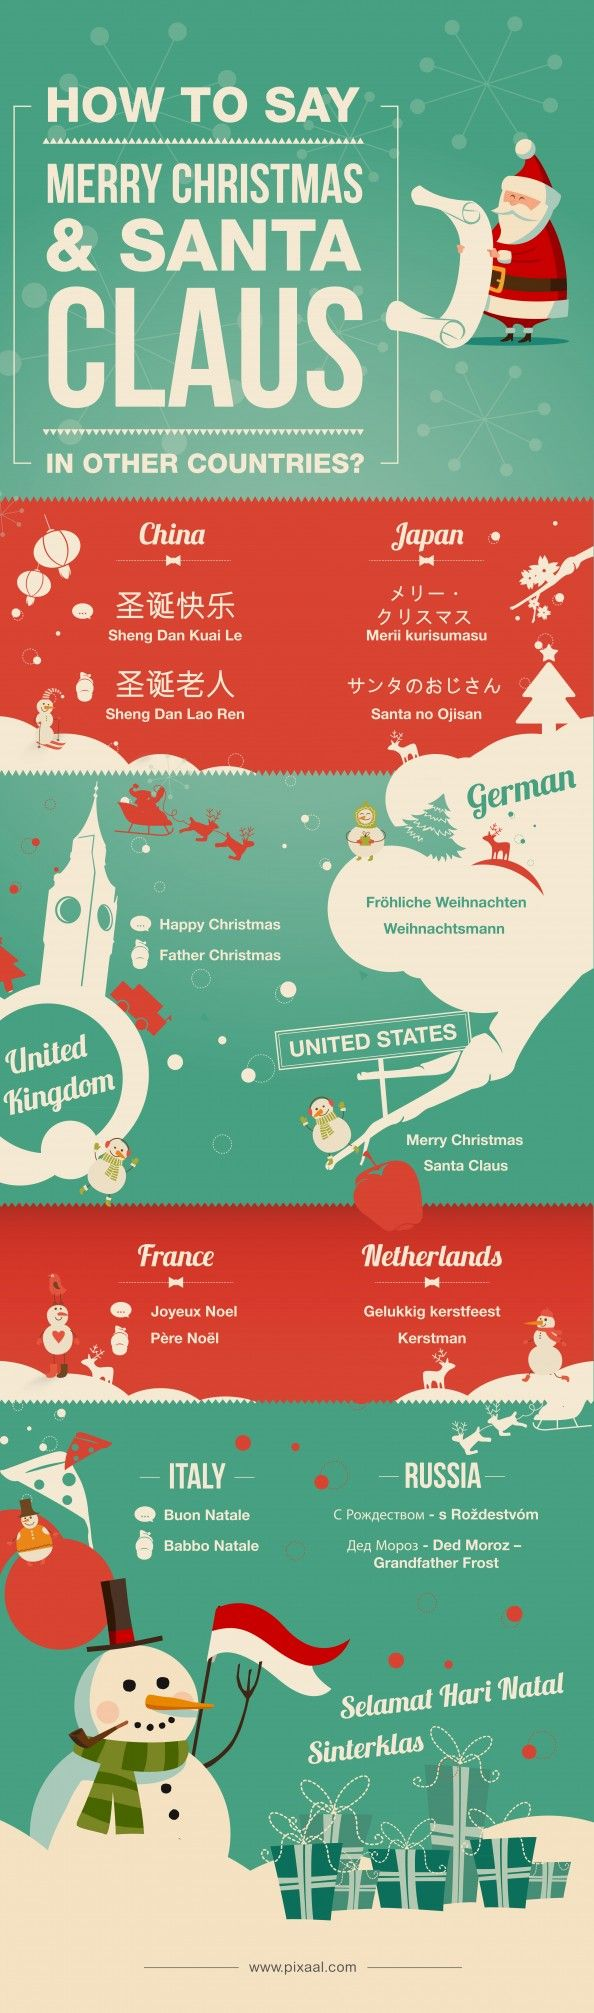 Educational Infographic How To Say Merry Christmas Santa Claus